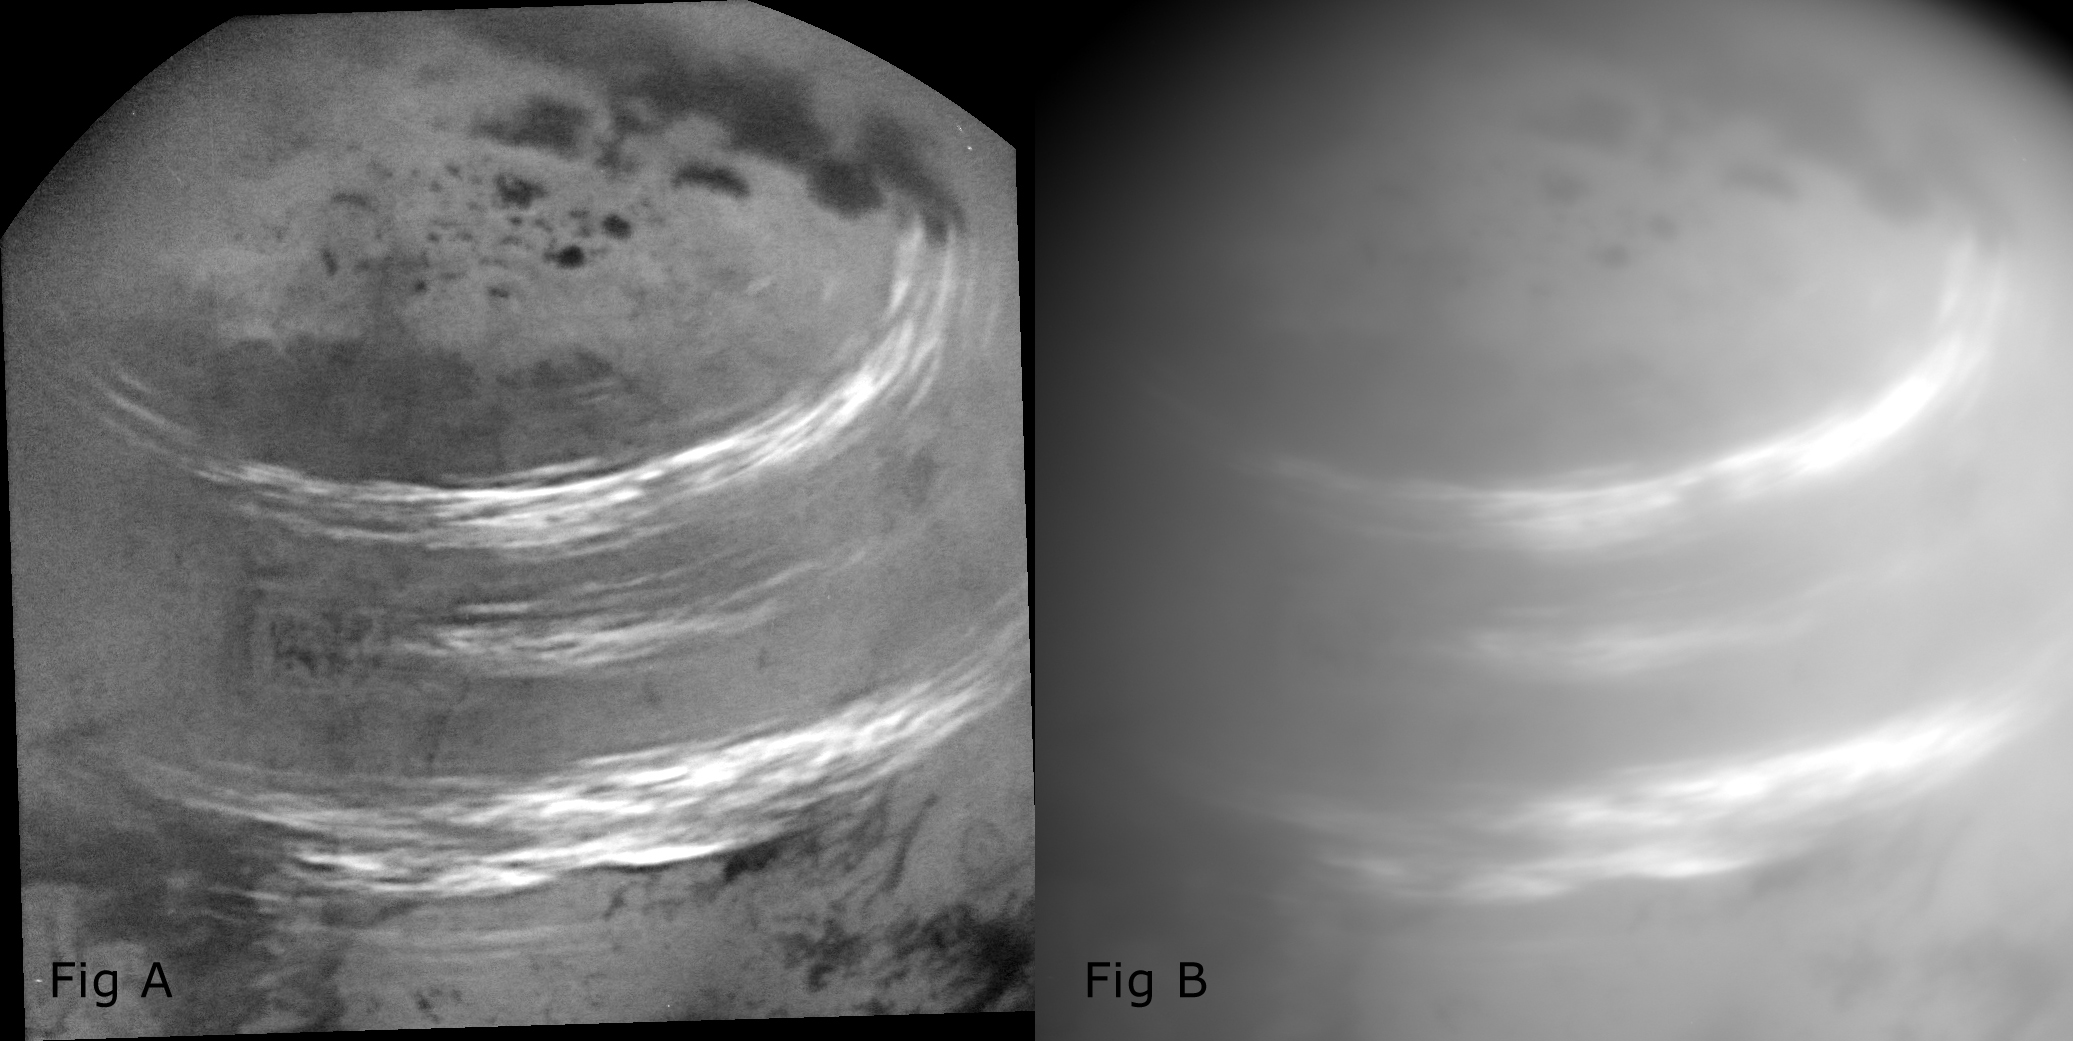 Two enhanced images of Titan